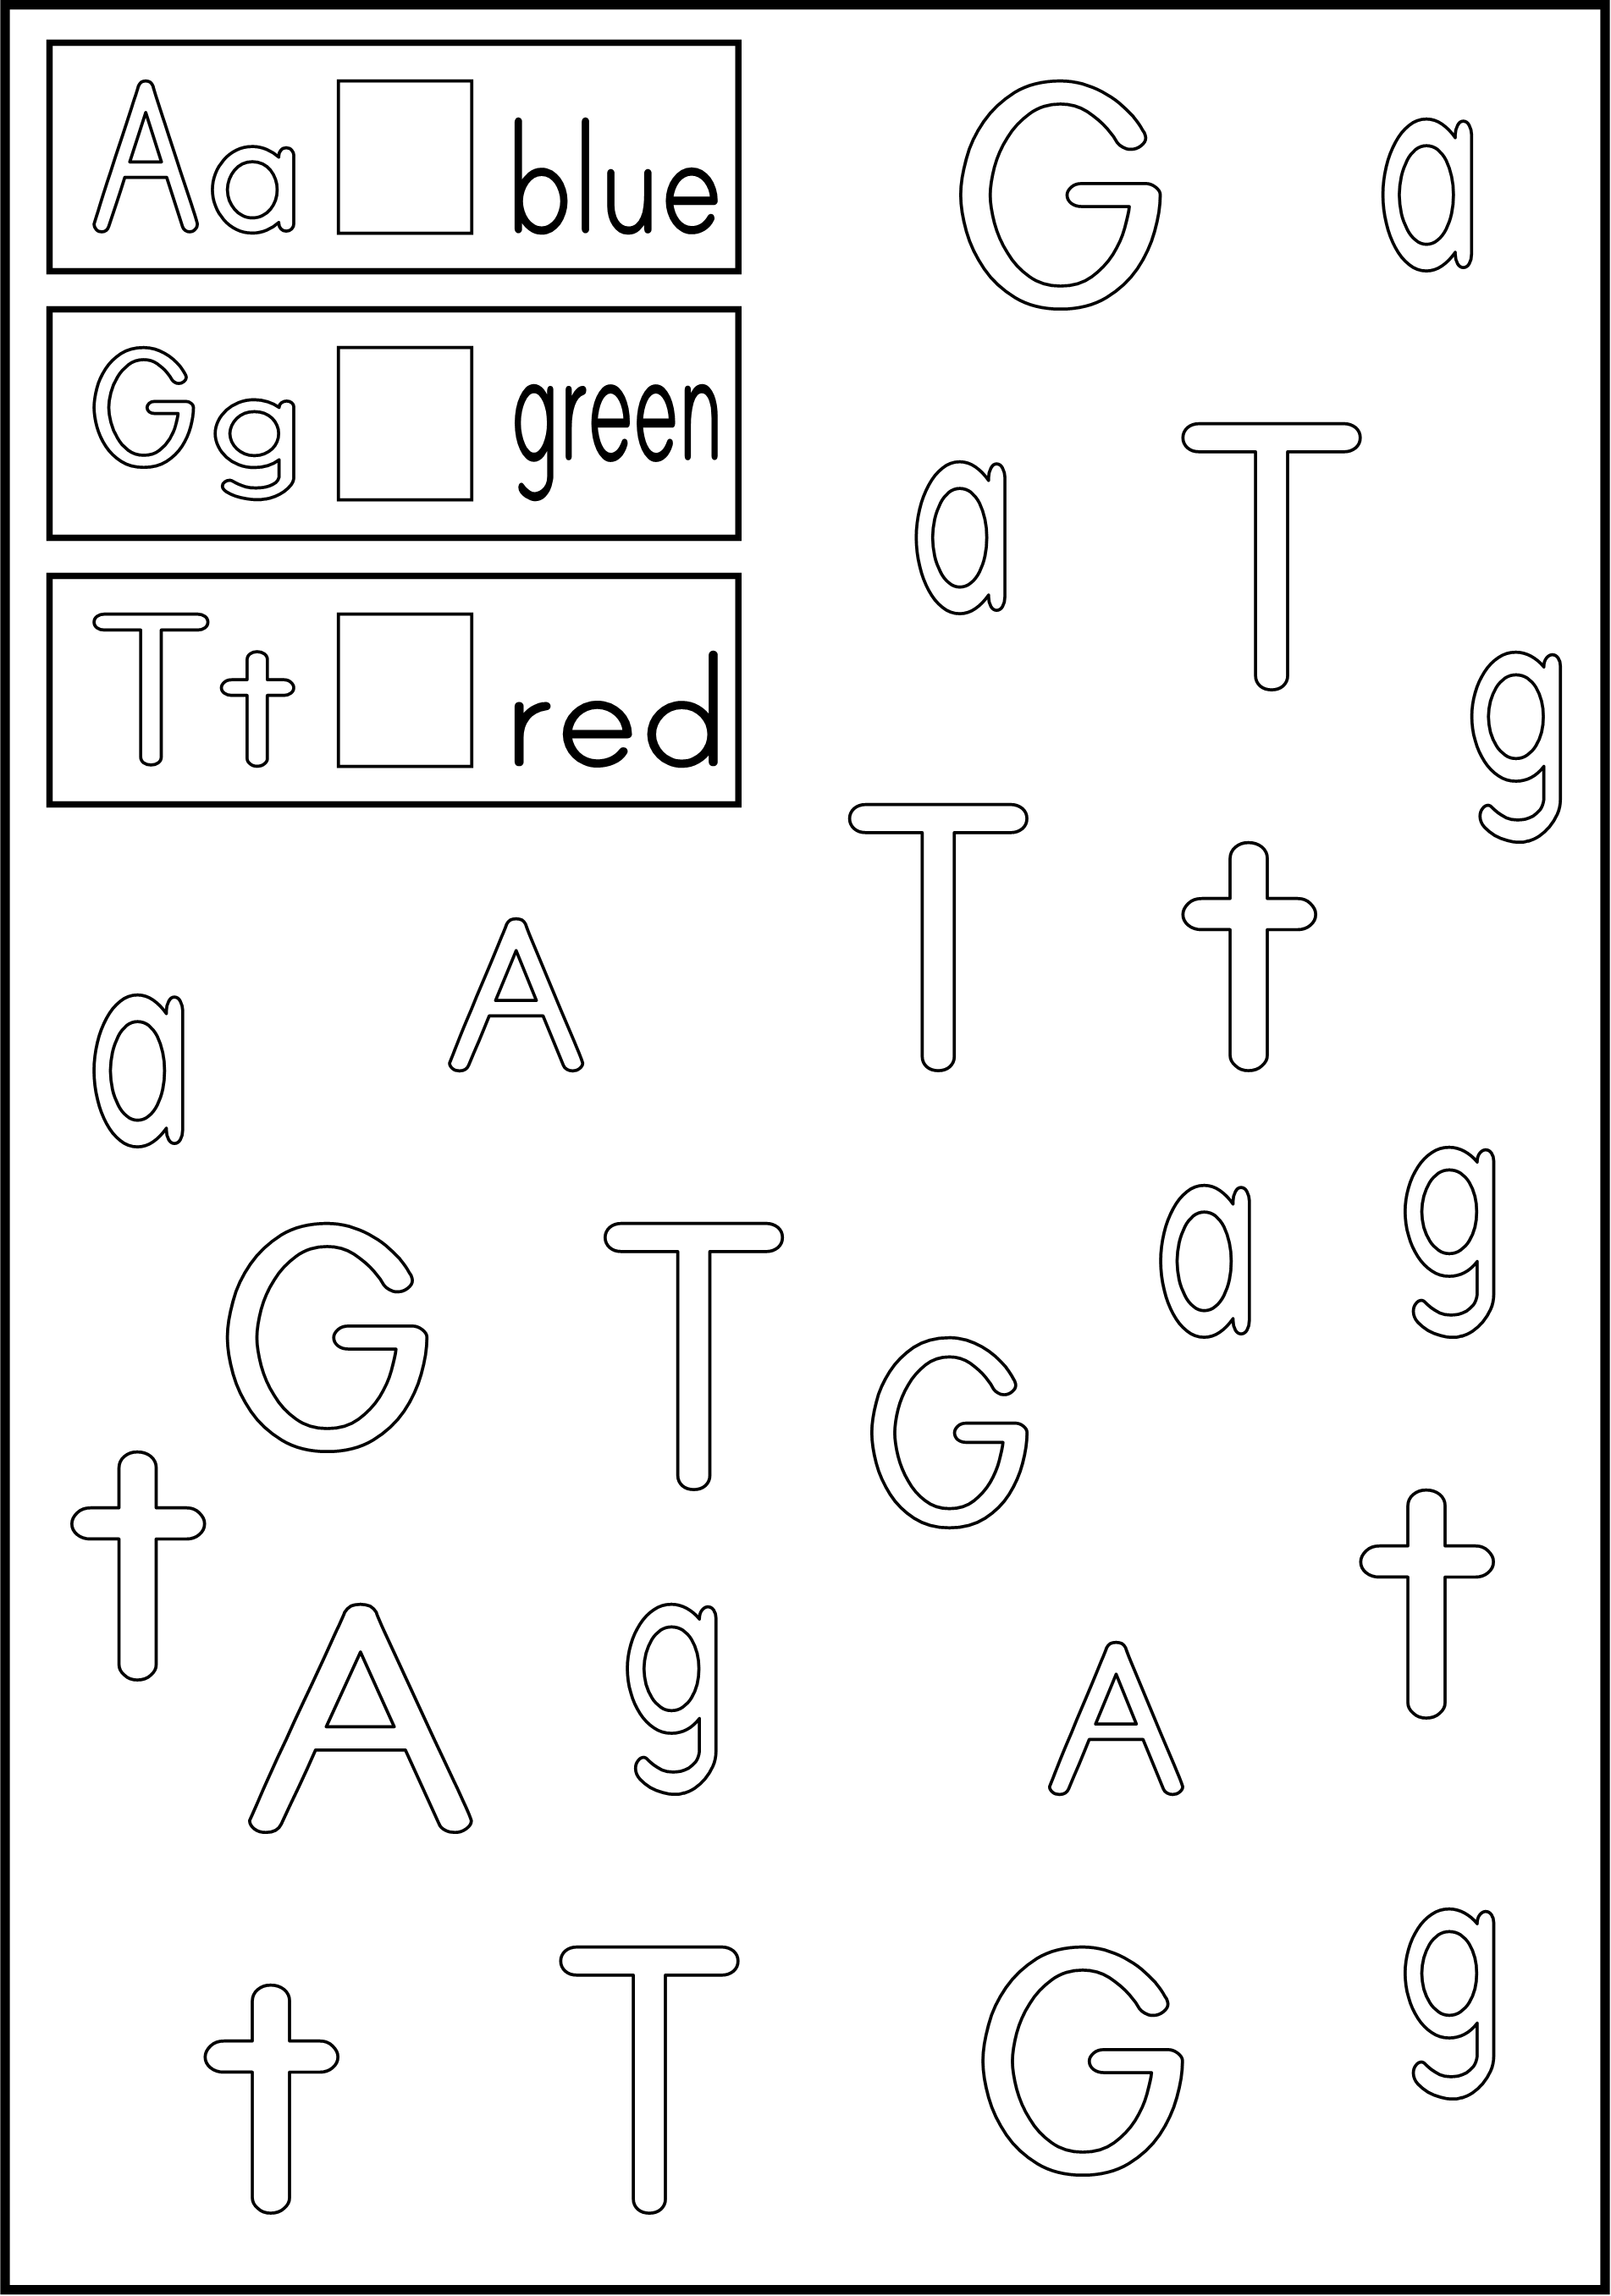 Link To Letter Recognition Worksheets